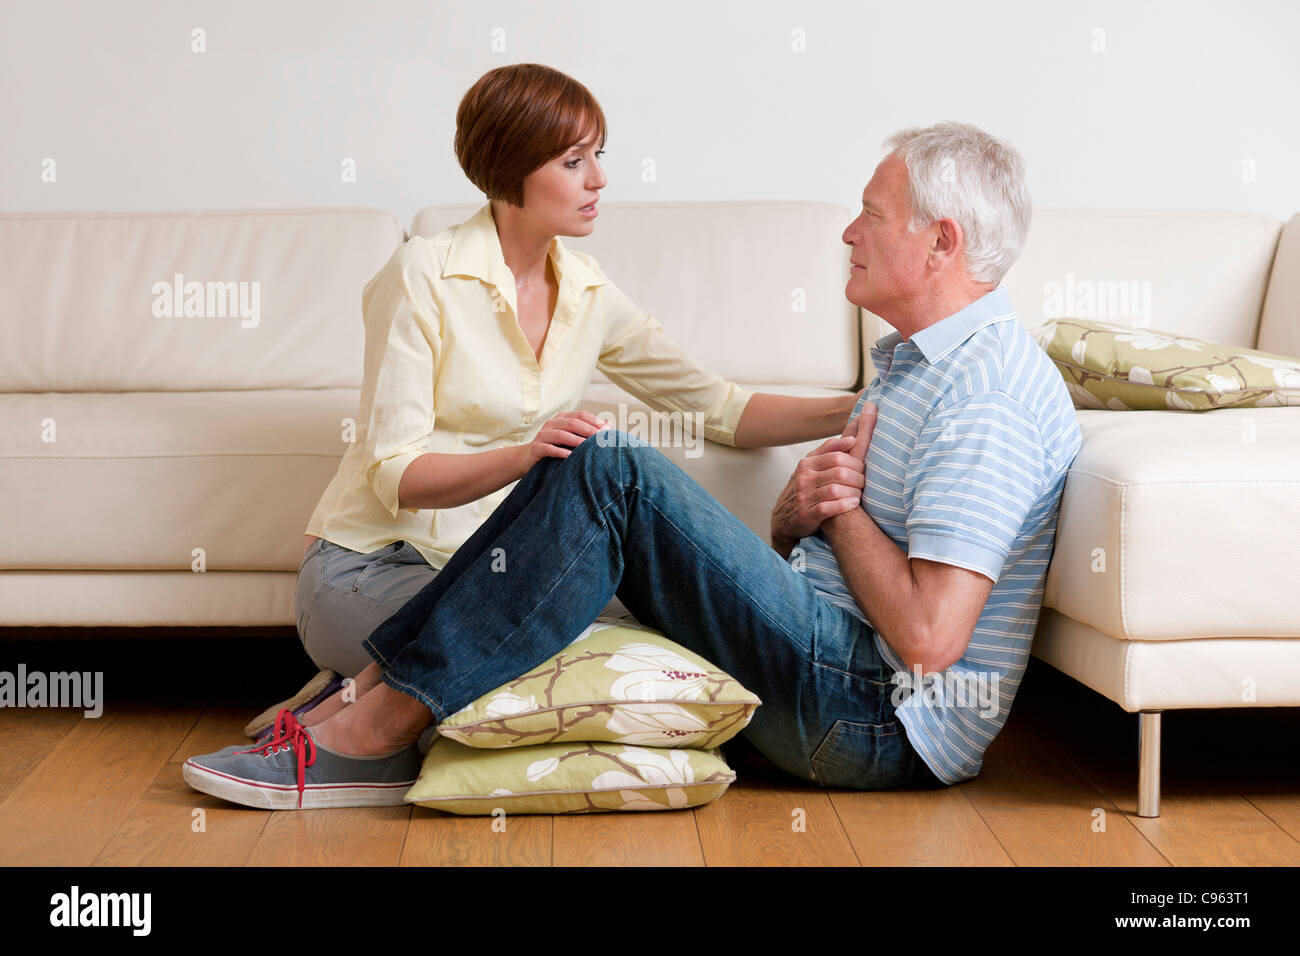 Man having a heart attack. The woman is placing him in a comfortable position until help comes. - Stock Image